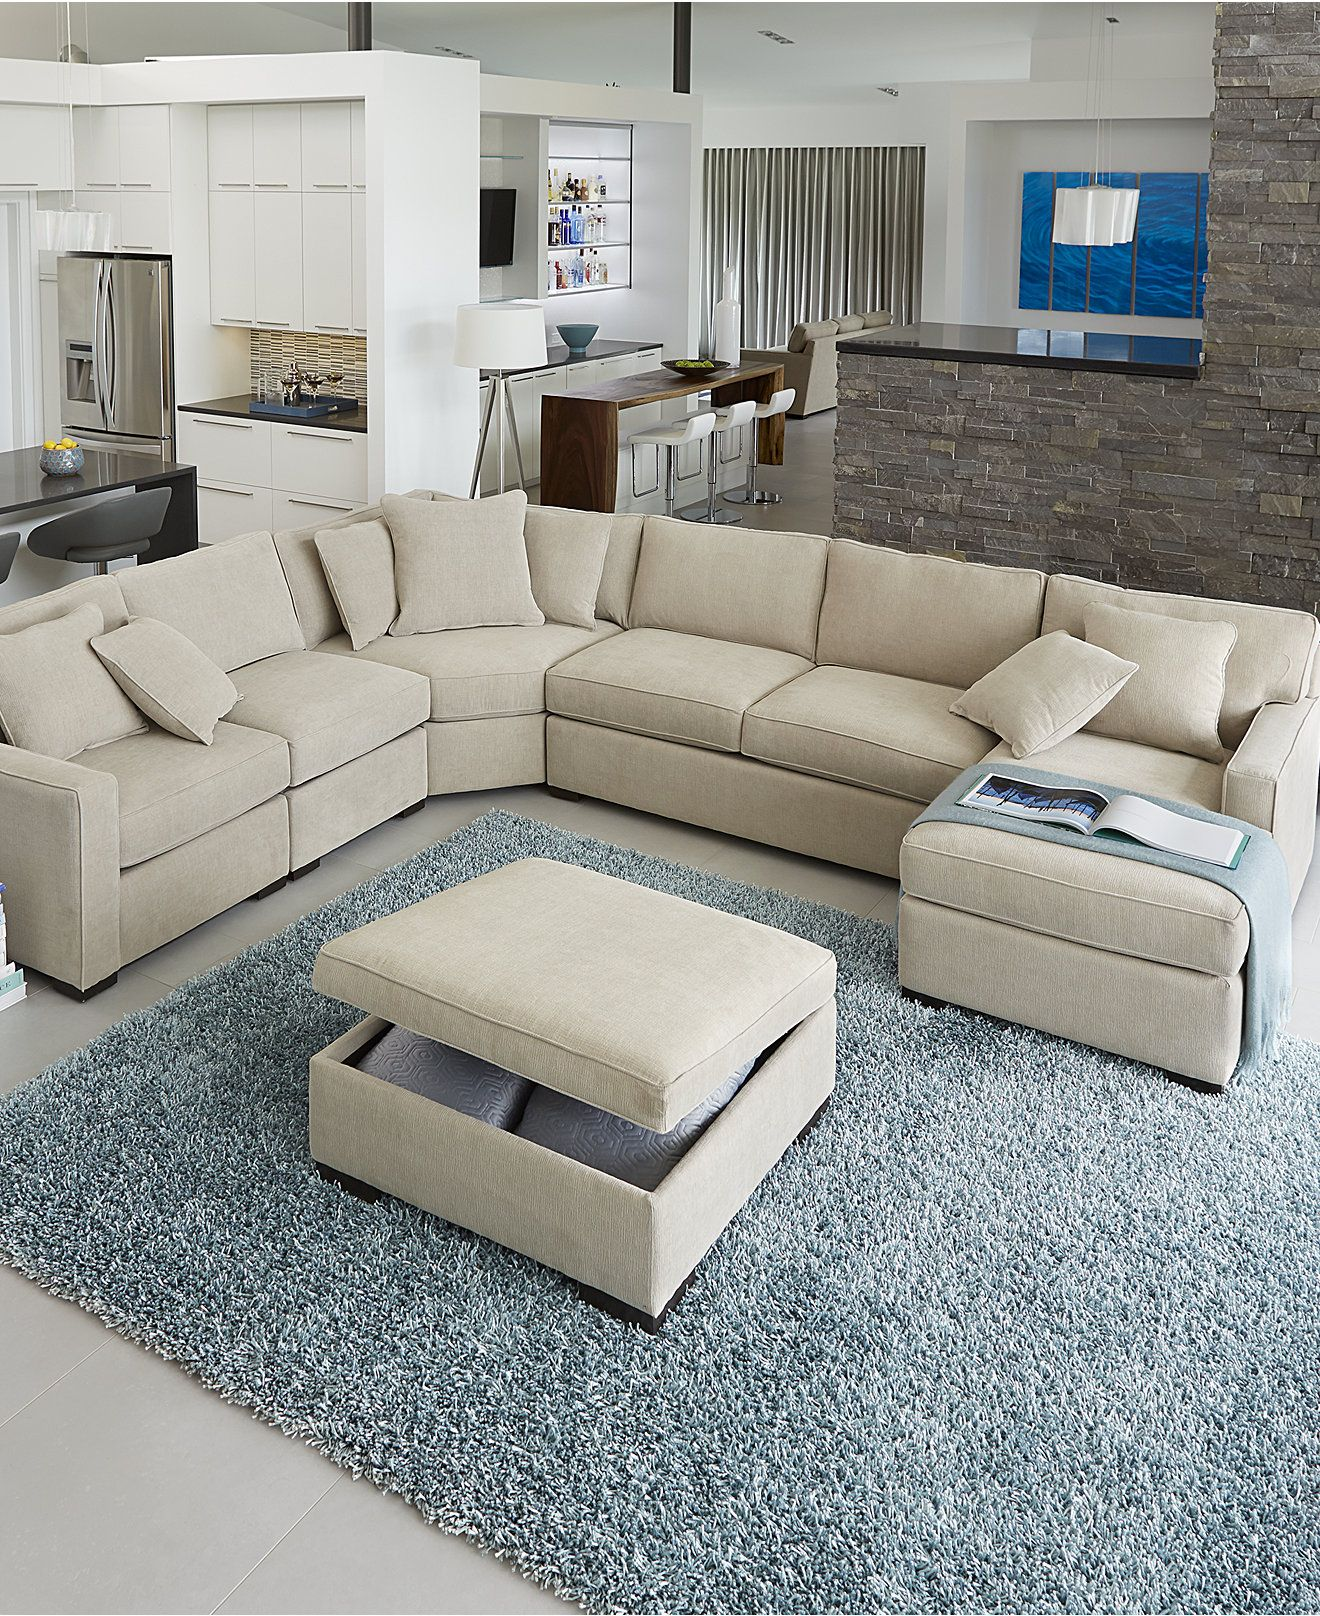 Radley Fabric Sectional Sofa Collection, Created for Macy\'s | Reno ...